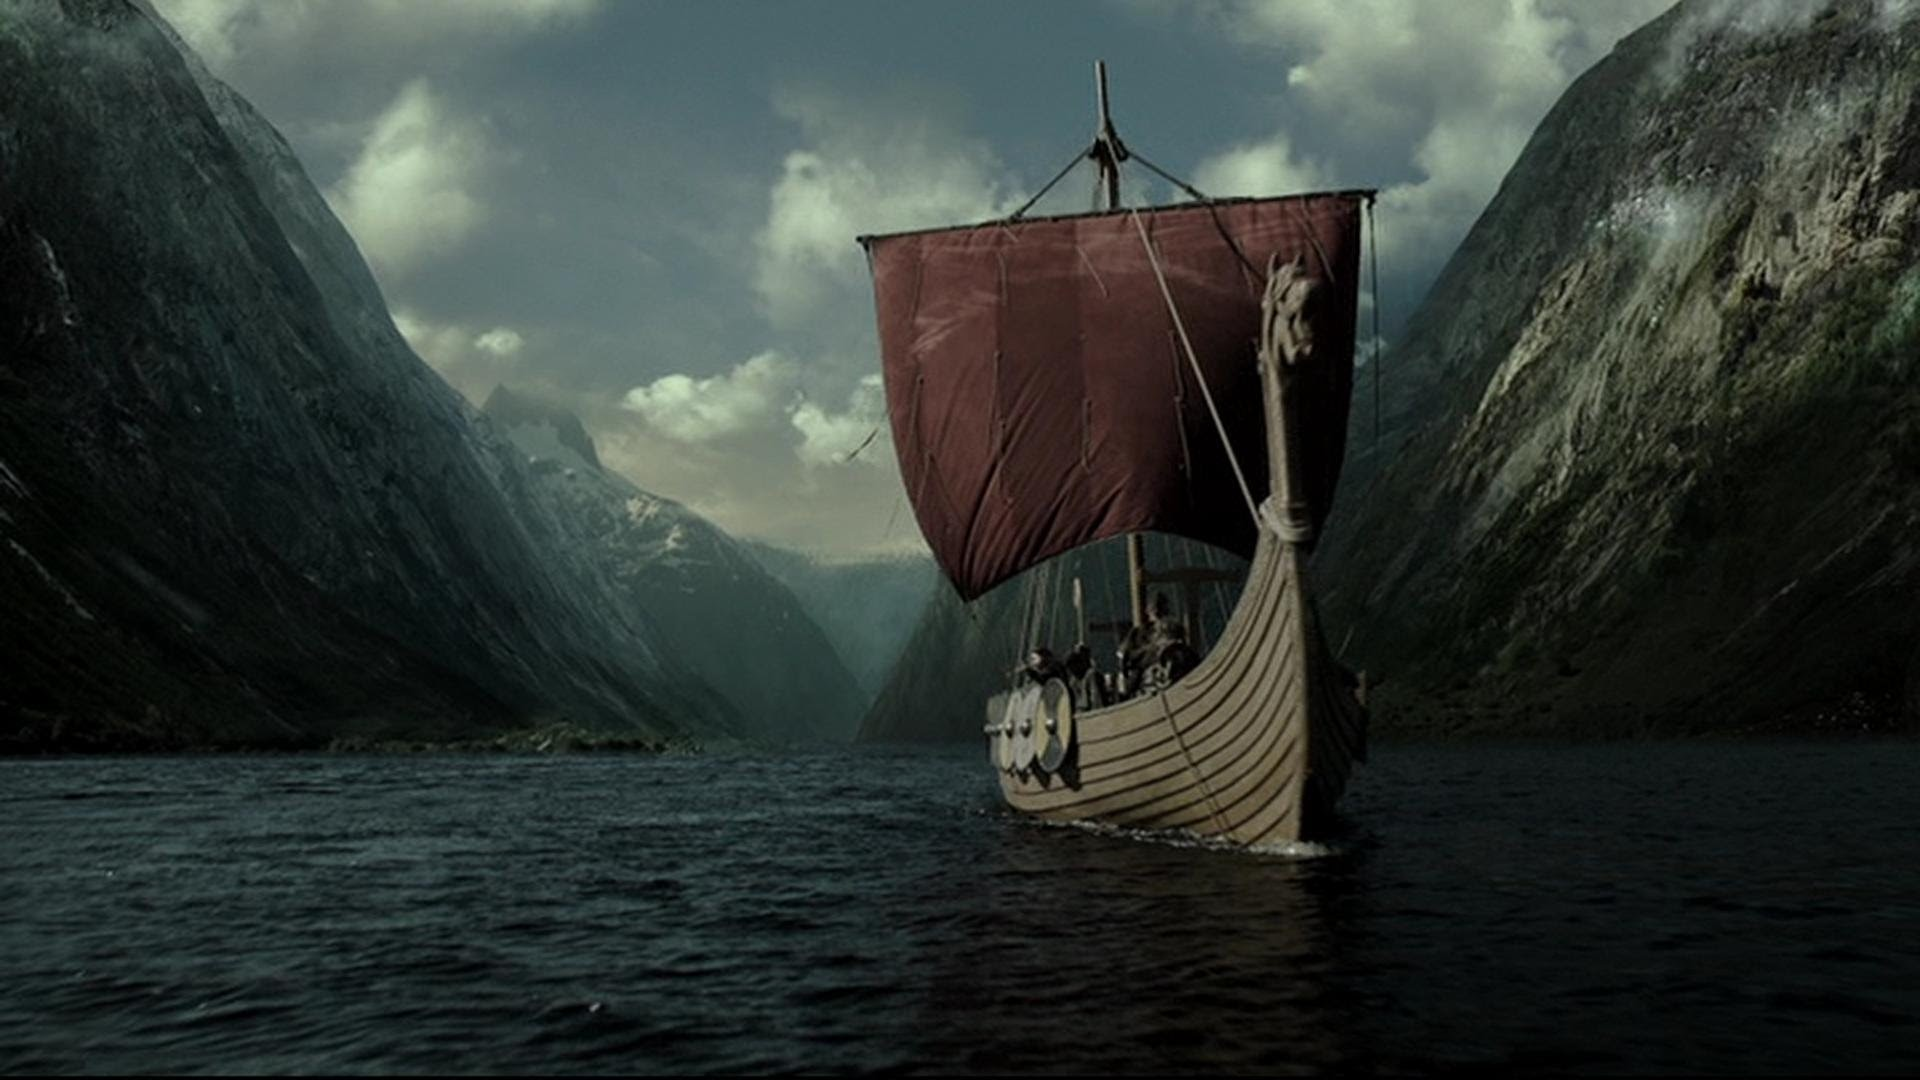 1920x1080 free hd vikings background full hd windows 10 backgrounds amazing download  wallpapers hi res quality images computer wallpapers colours 1920×1080  Wallpaper ...